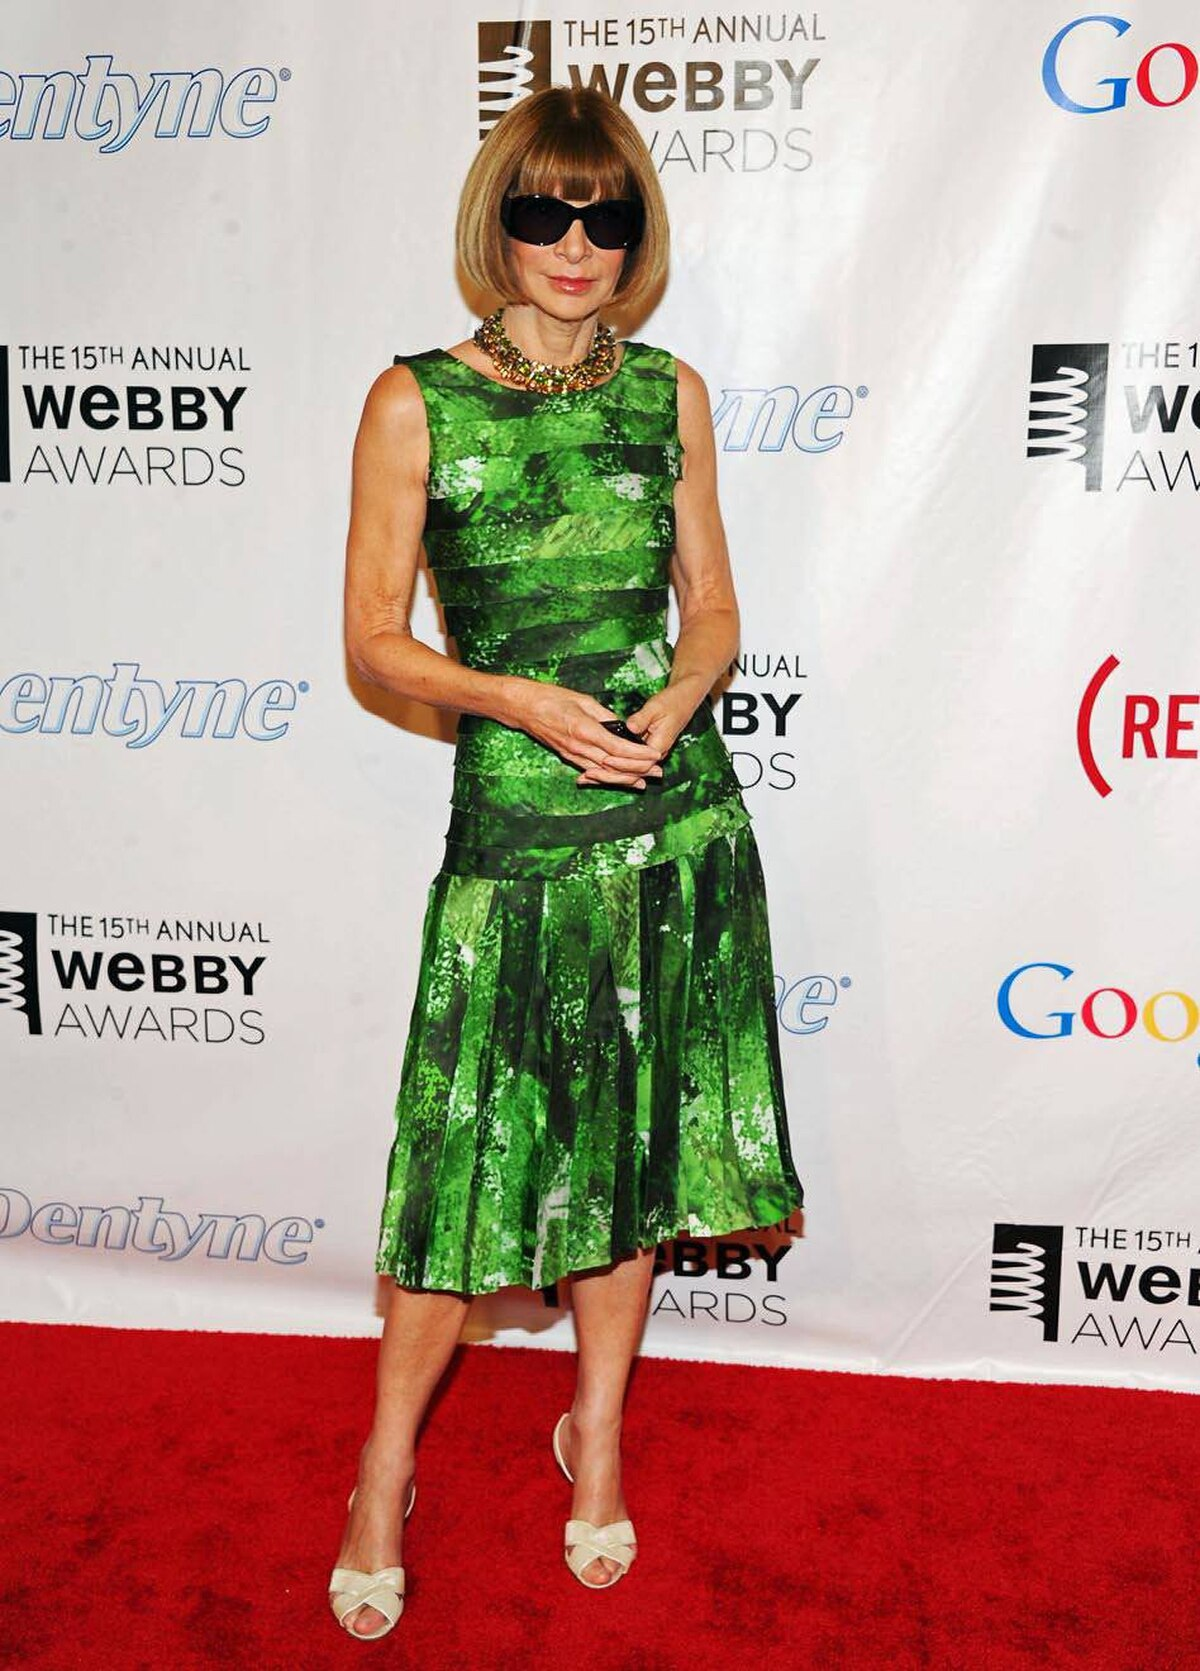 Vogue editor Anna Wintour attends the 15th Annual Webby Awards at Hammerstein Ballroom on June 13, 2011 in New York.